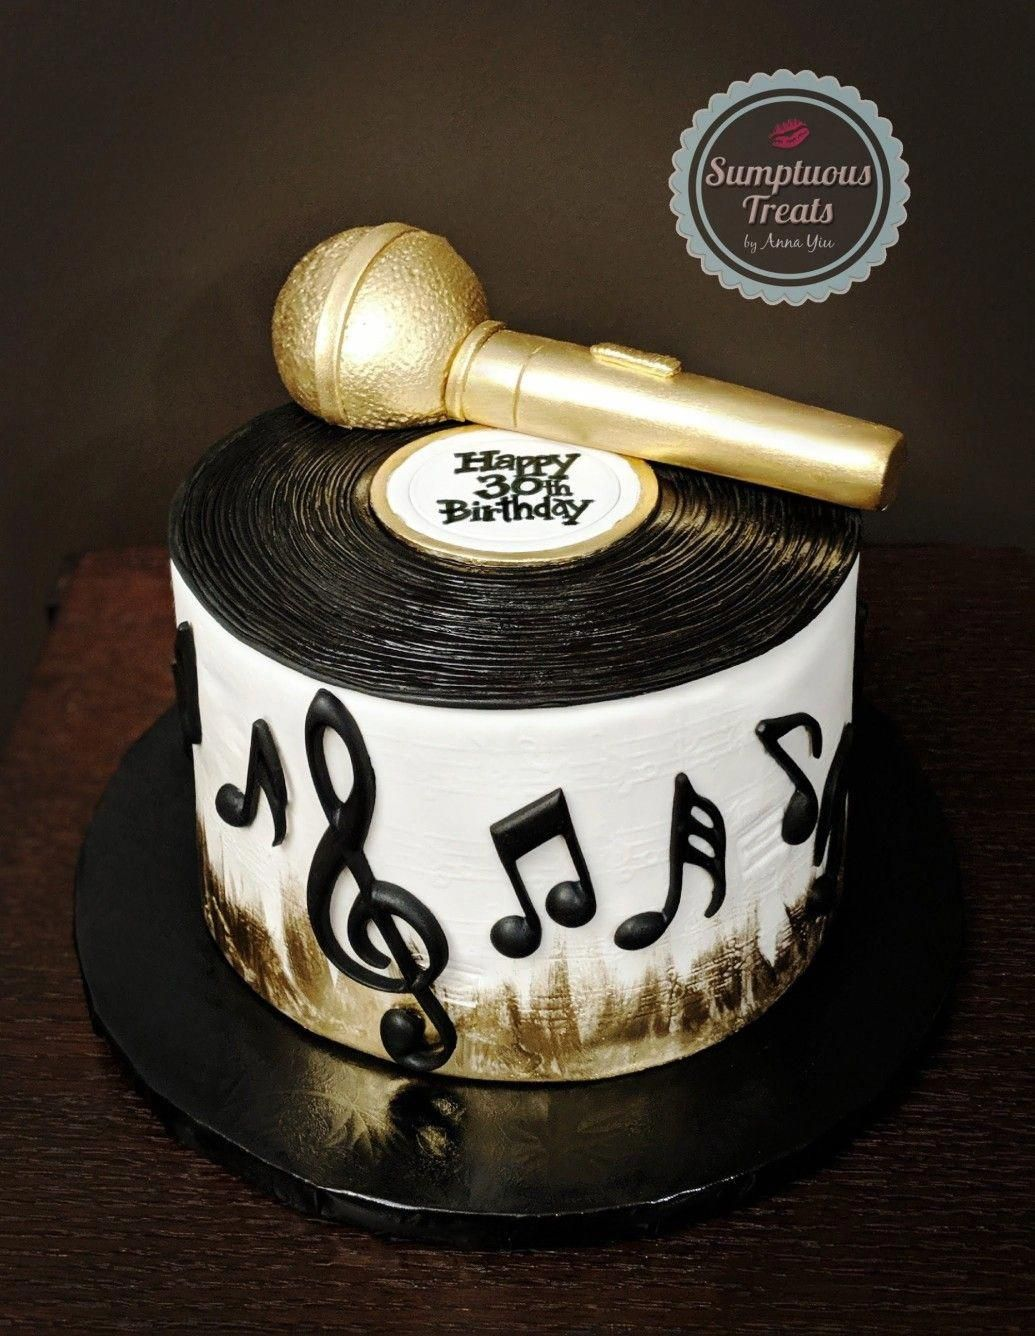 Wondrous Cake With Carrot And Ham Recipe In 2020 Music Birthday Cakes Funny Birthday Cards Online Aeocydamsfinfo